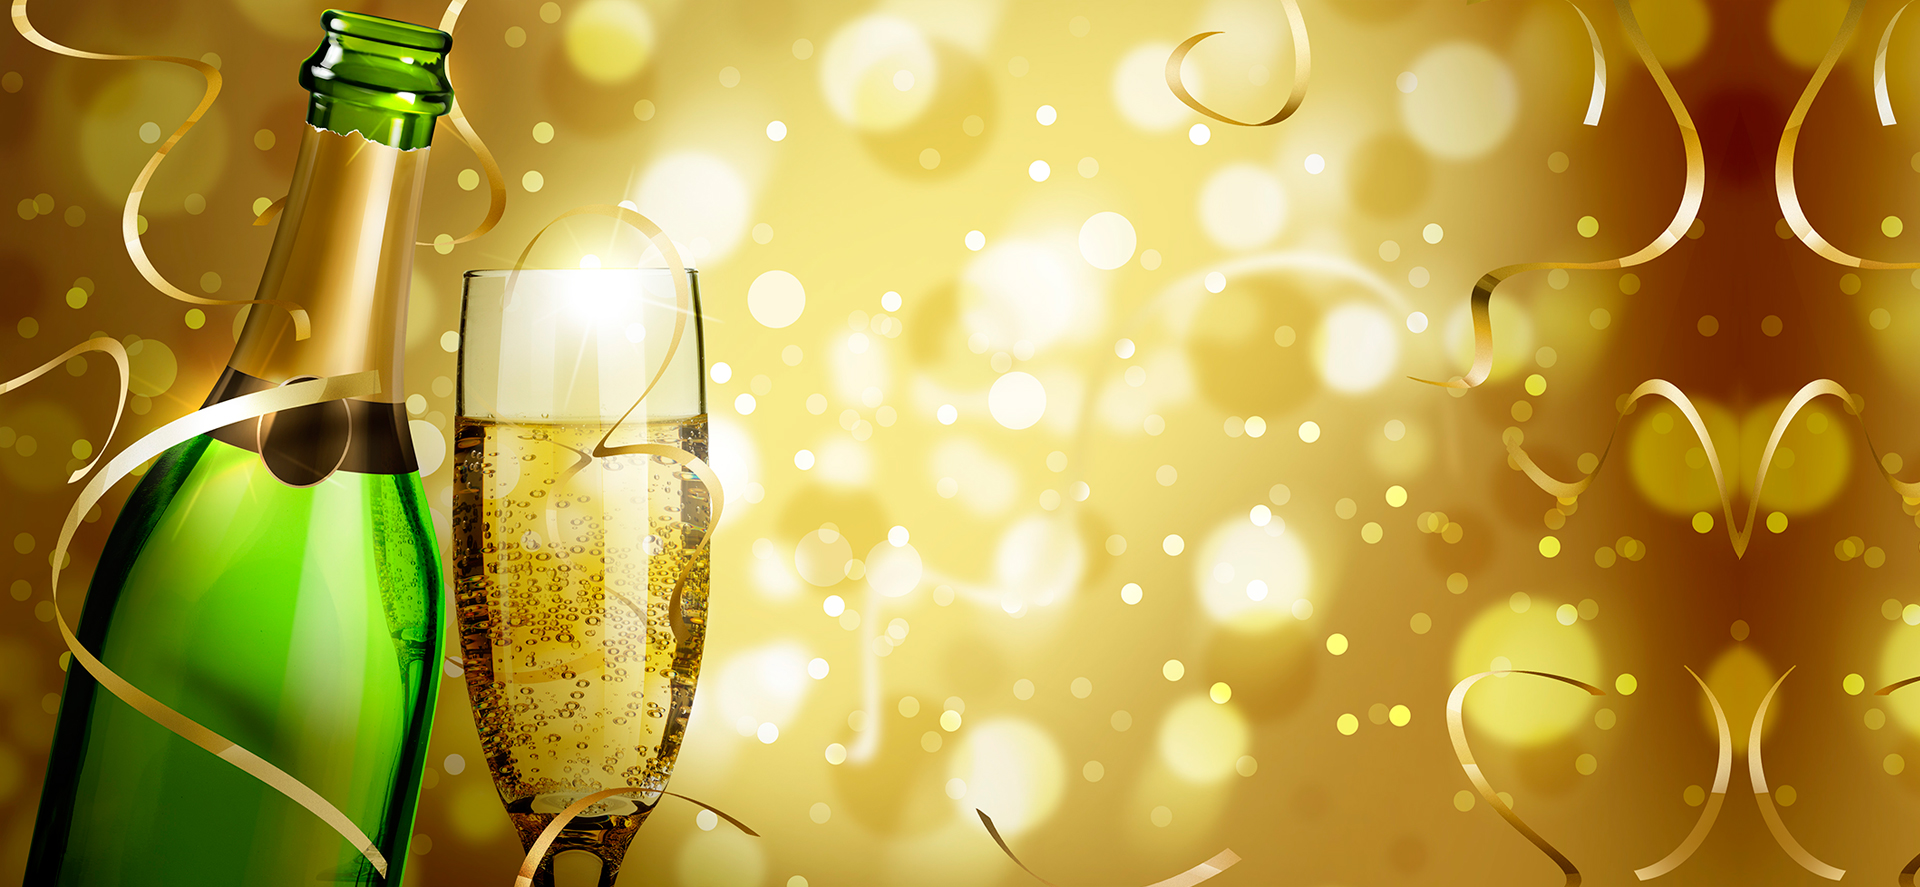 christmas carnival champagne glow golden beer background